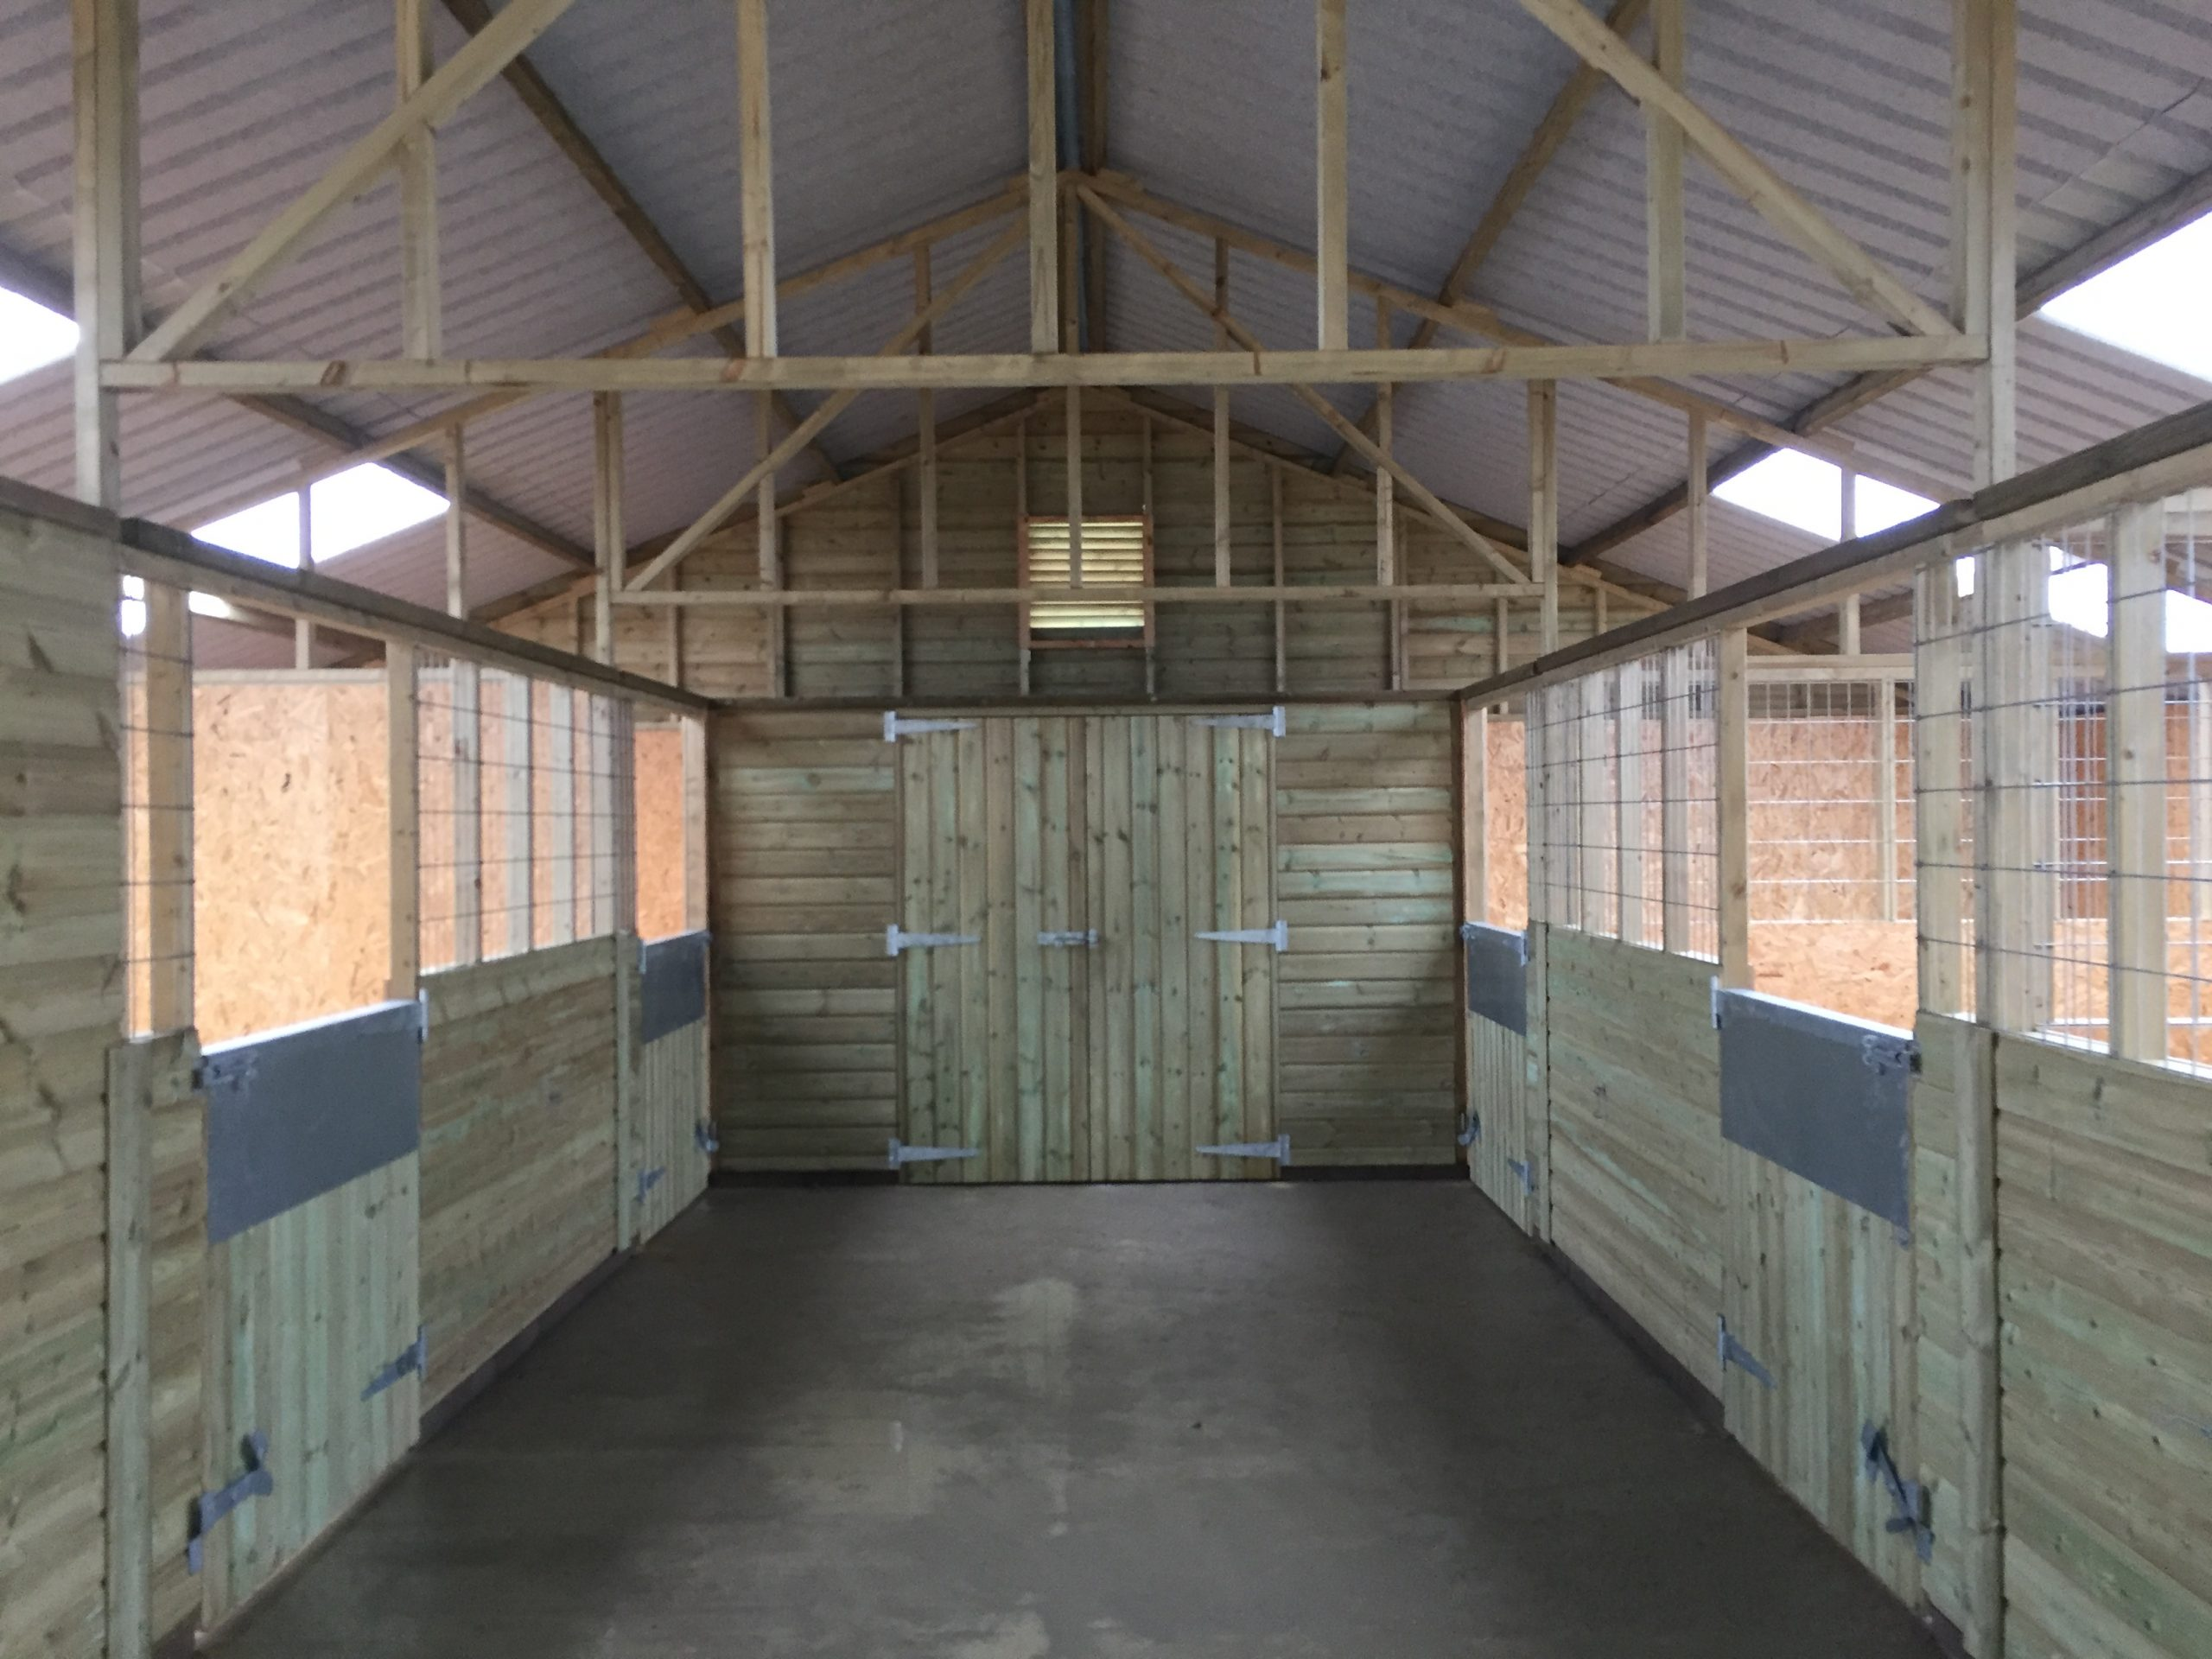 american barn internal view